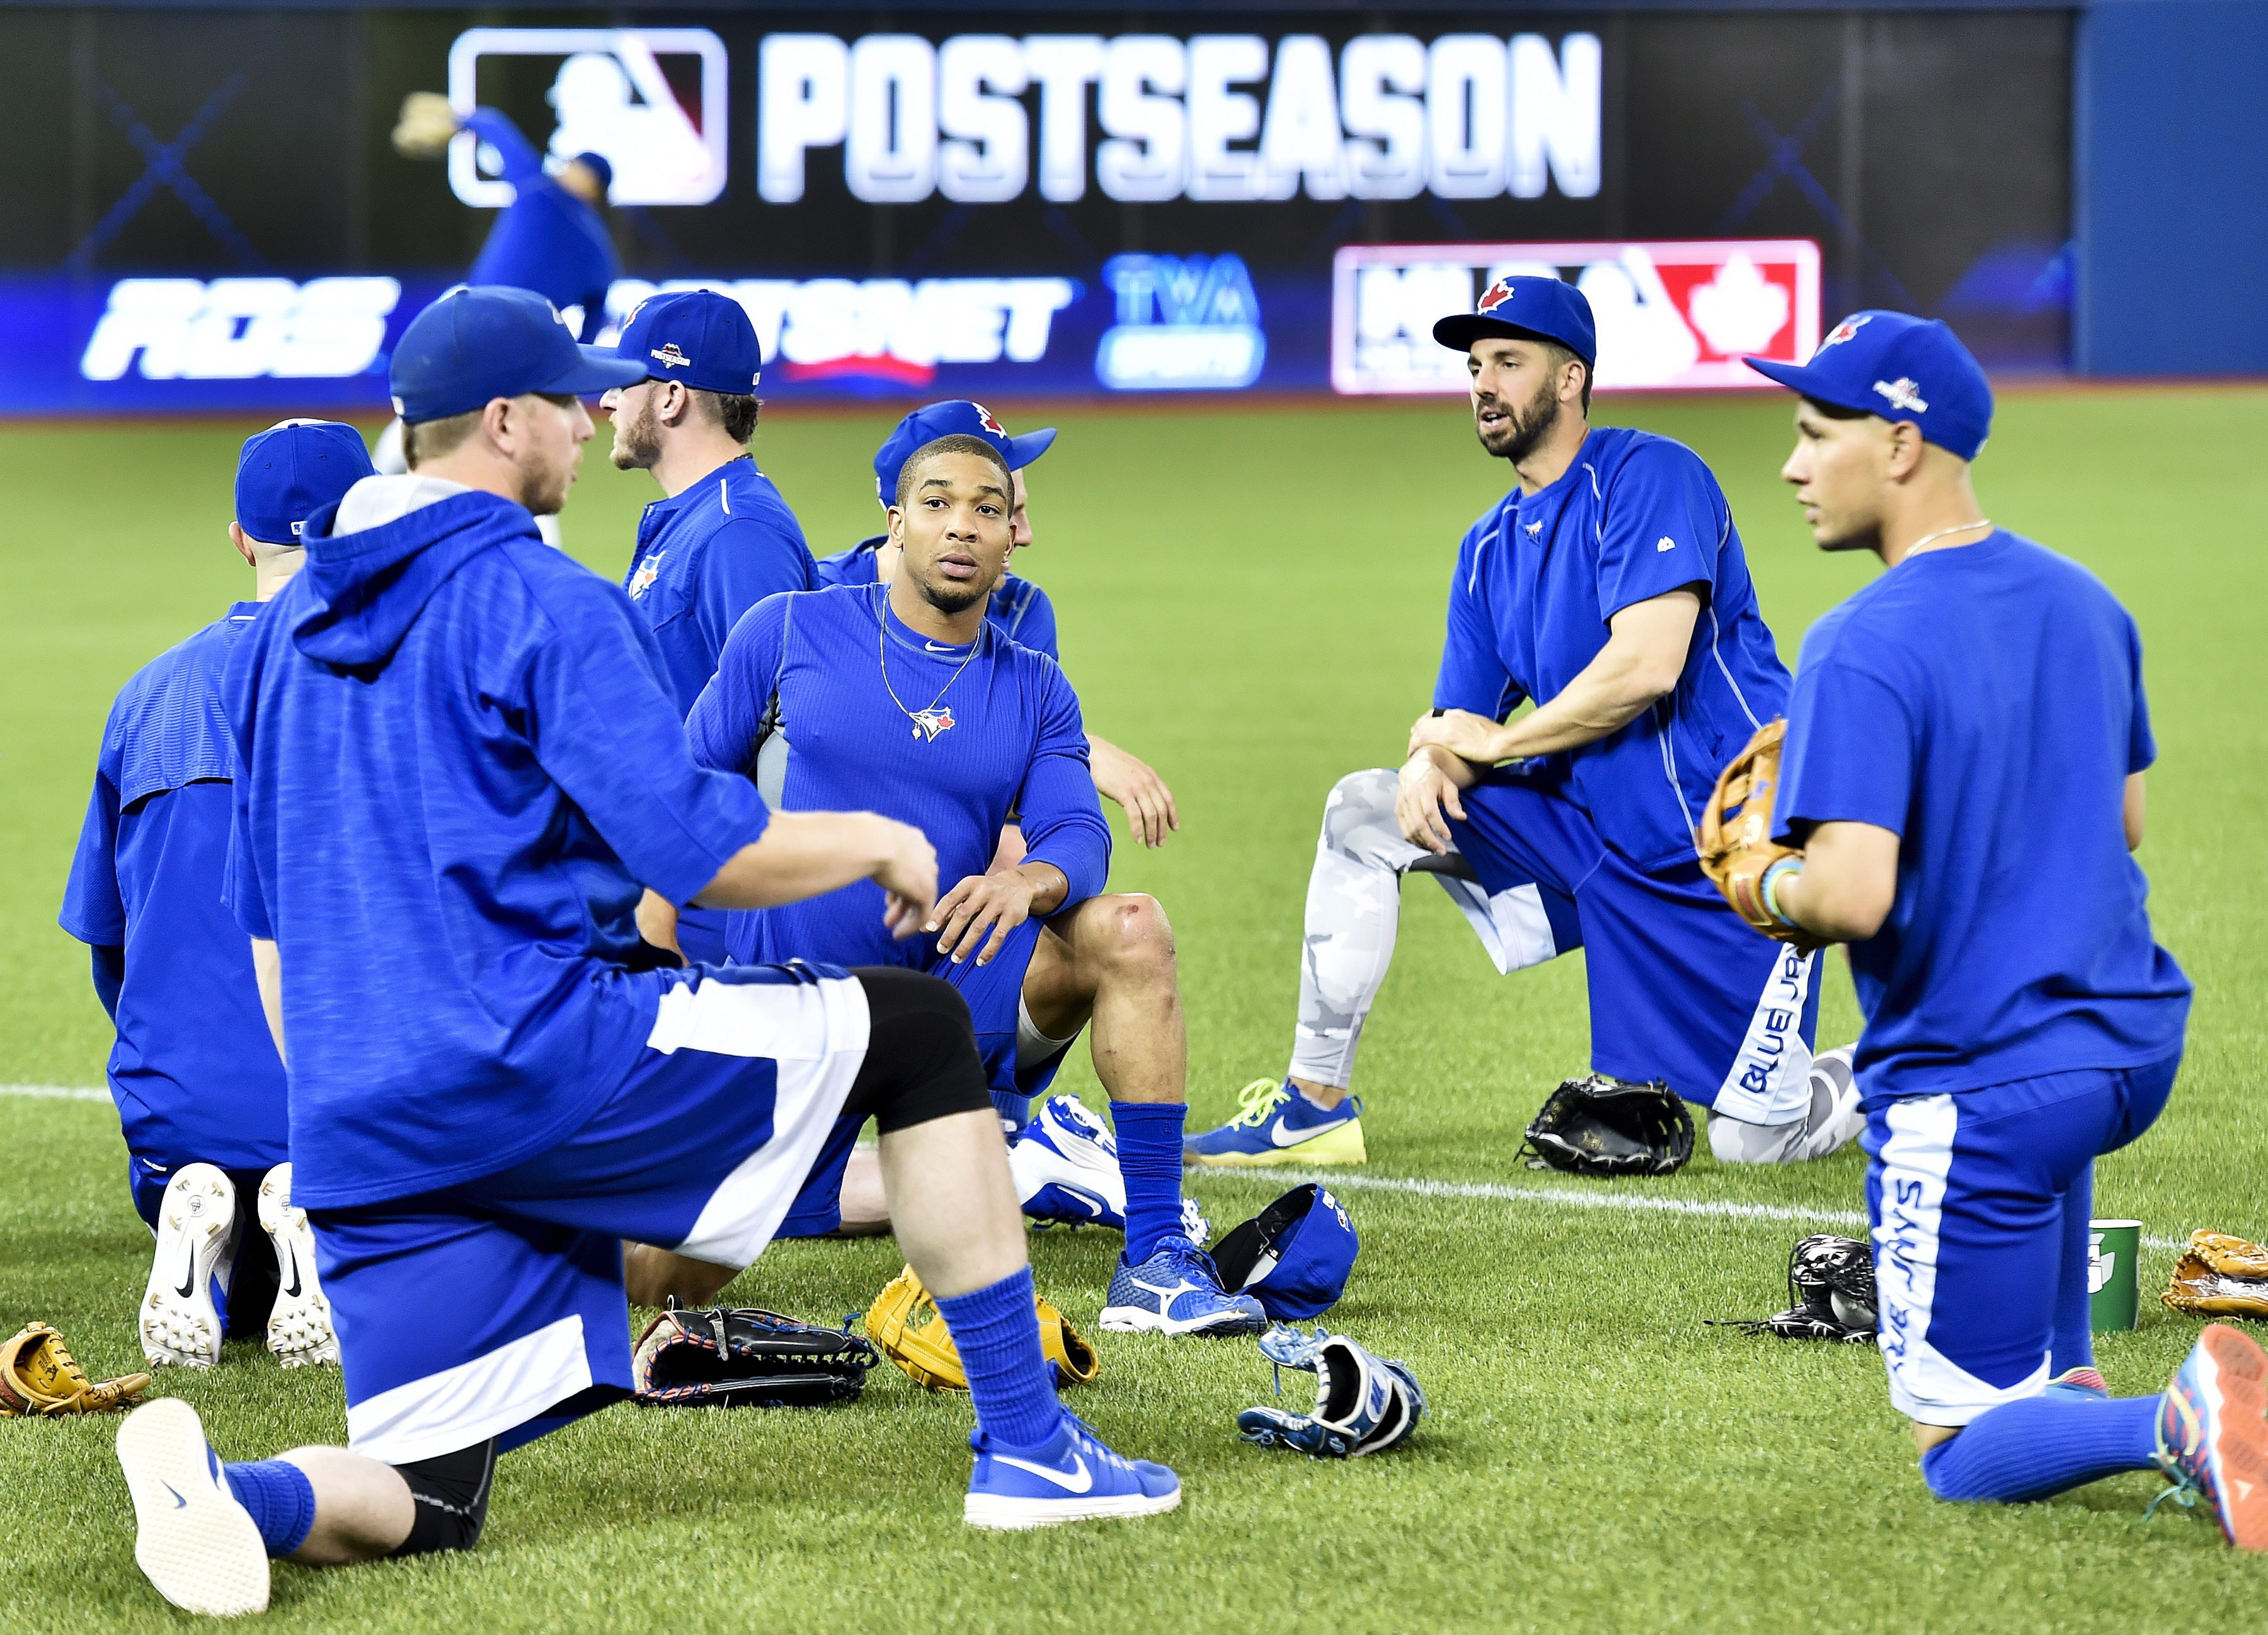 Toronto Blue Jays players stretch as they take part in an optional practice ahead of game five in the ALDS playoffs, Tuesday, Oct. 13, 2015 in Toronto. The Blue Jays host the Texas Rangers in Game 5 of the American League Division Series on Wednesday. The